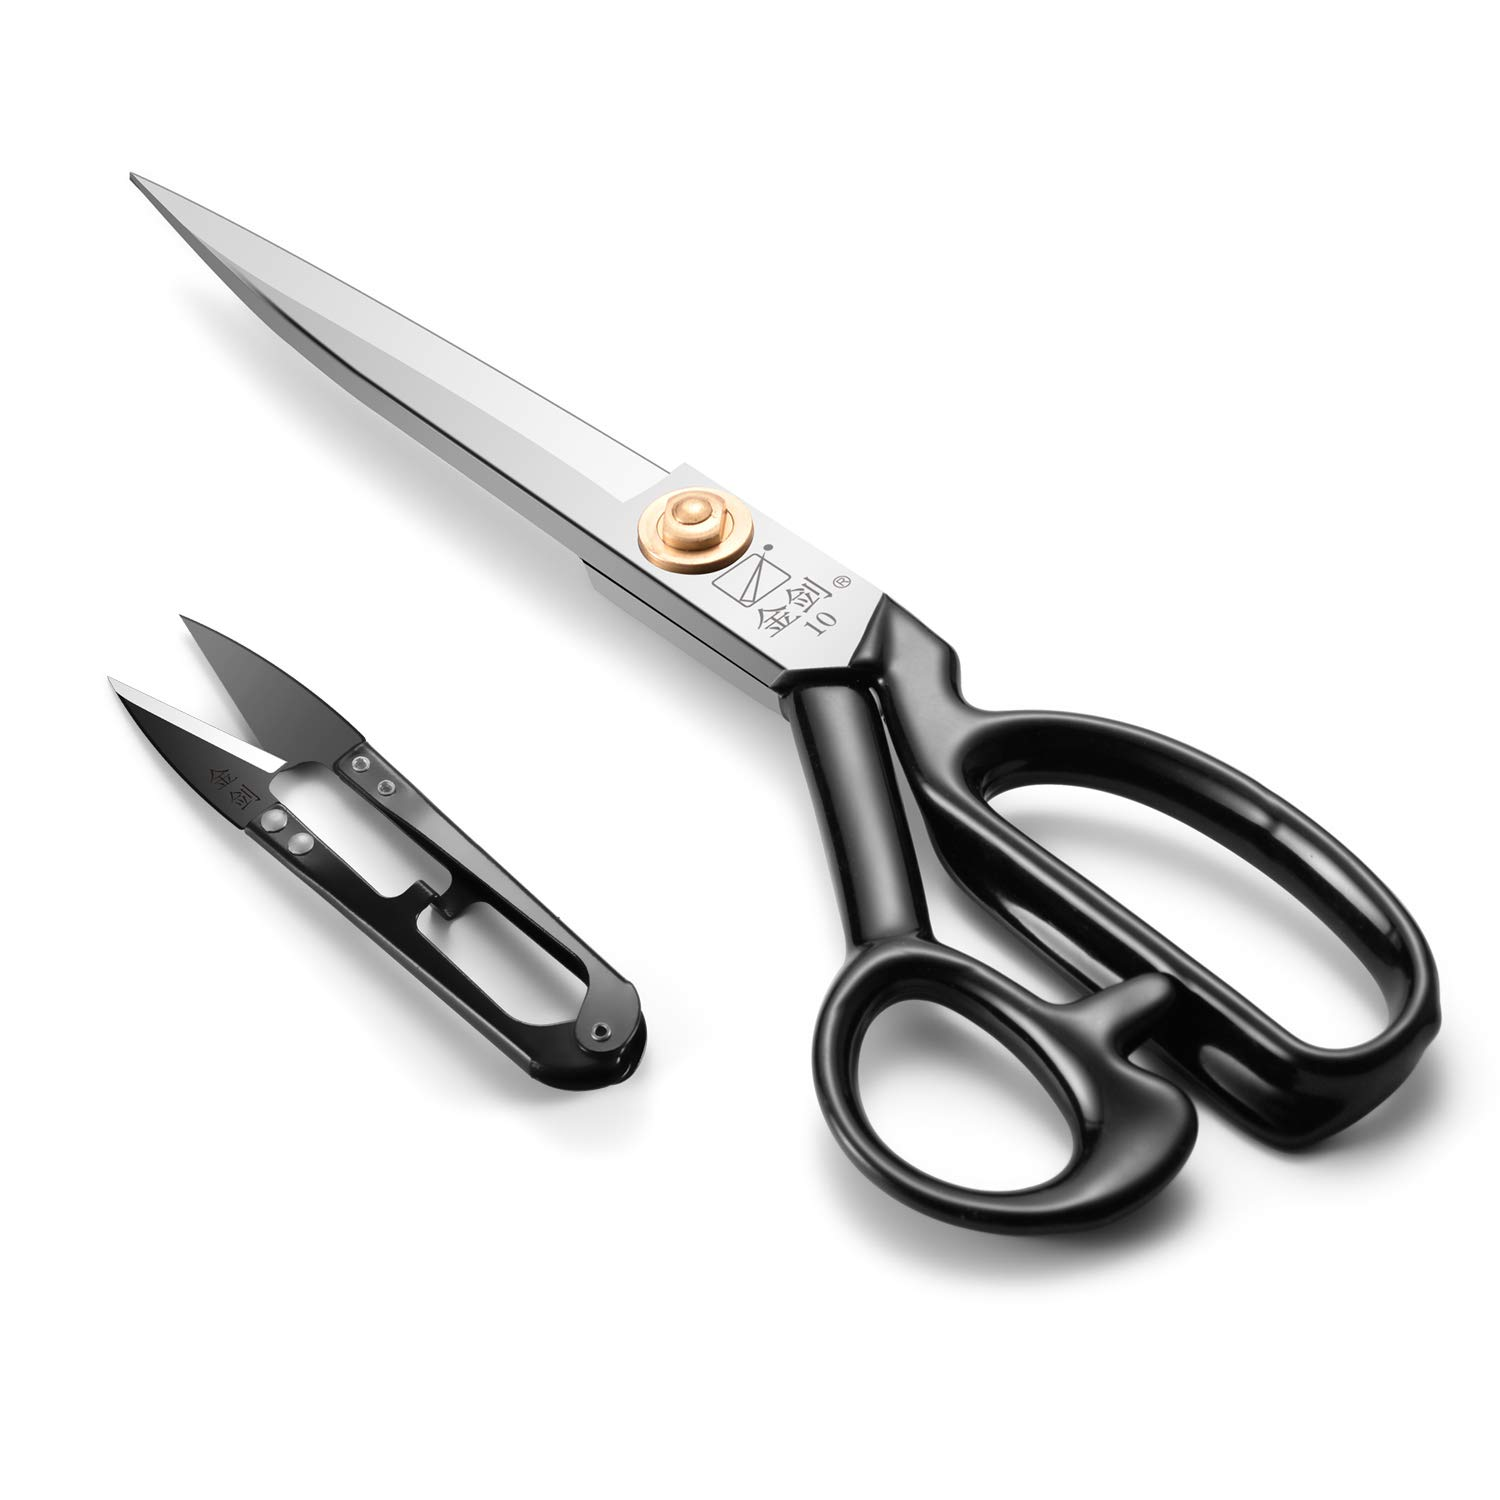 Sewing Scissors 10 Inch - Fabric Dressmaking Scissors Upholstery Office Shears for Tailors Dressmakers, Best for Cutting Fabric Leather Paper Raw Materials Heavy Duty High Carbon Steel(Right-Handed) by Homlynn